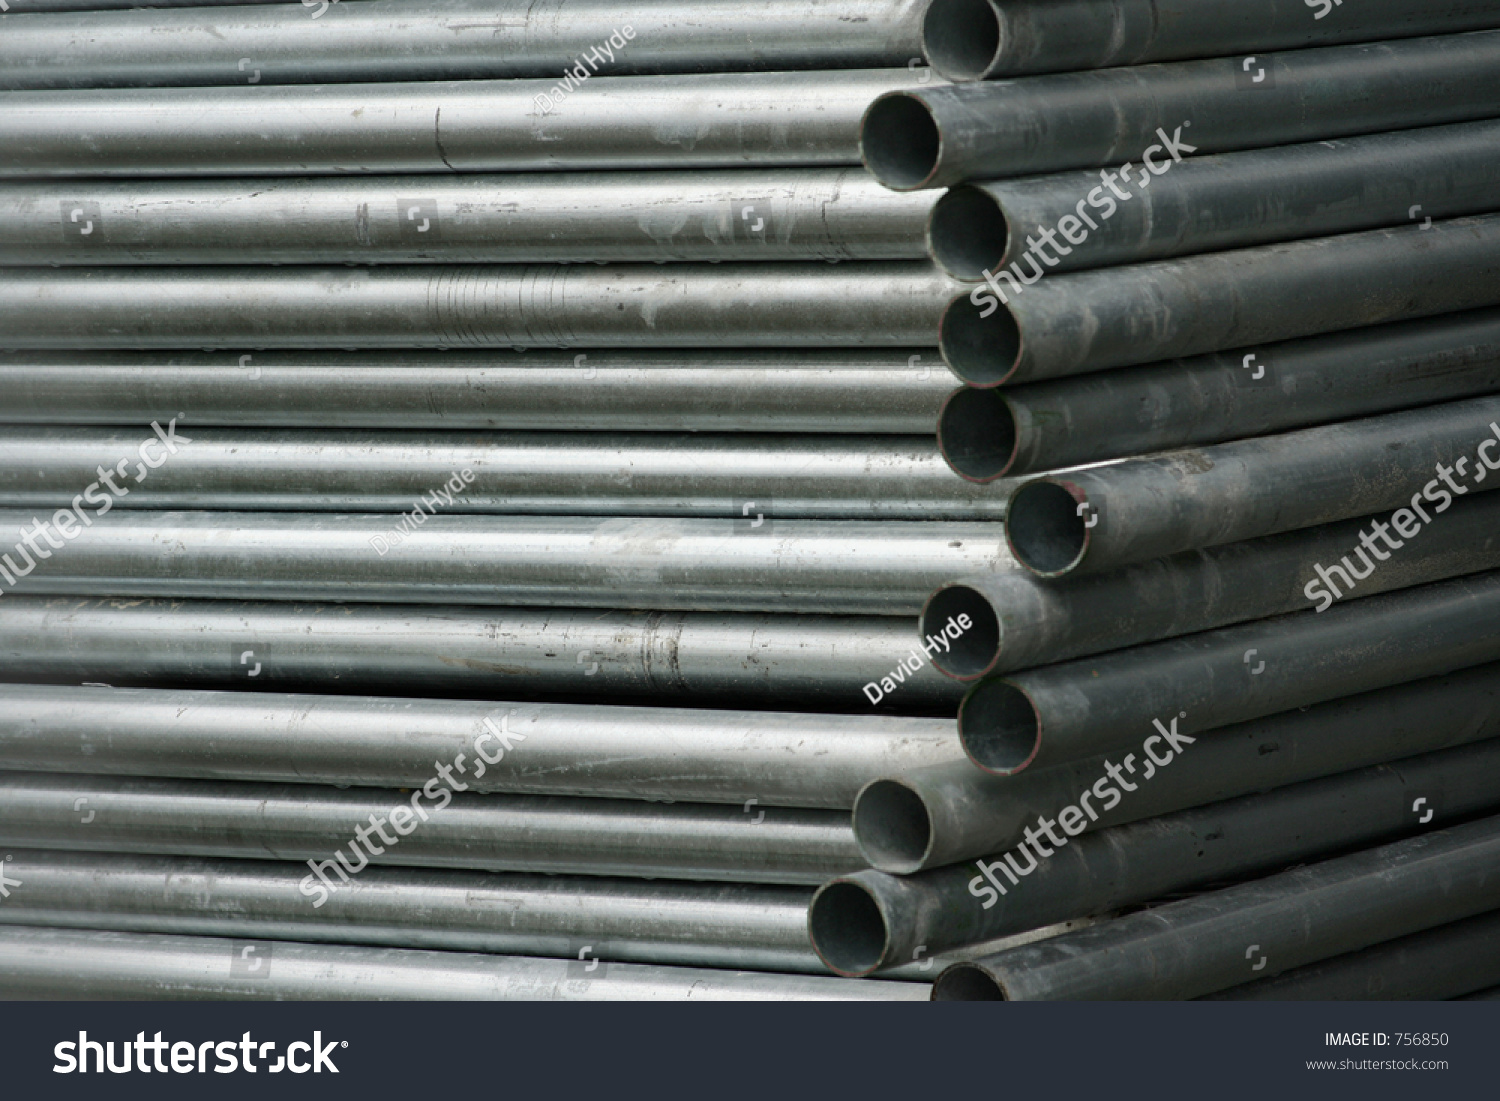 Stack of steel pipe trestles used for temporary sports